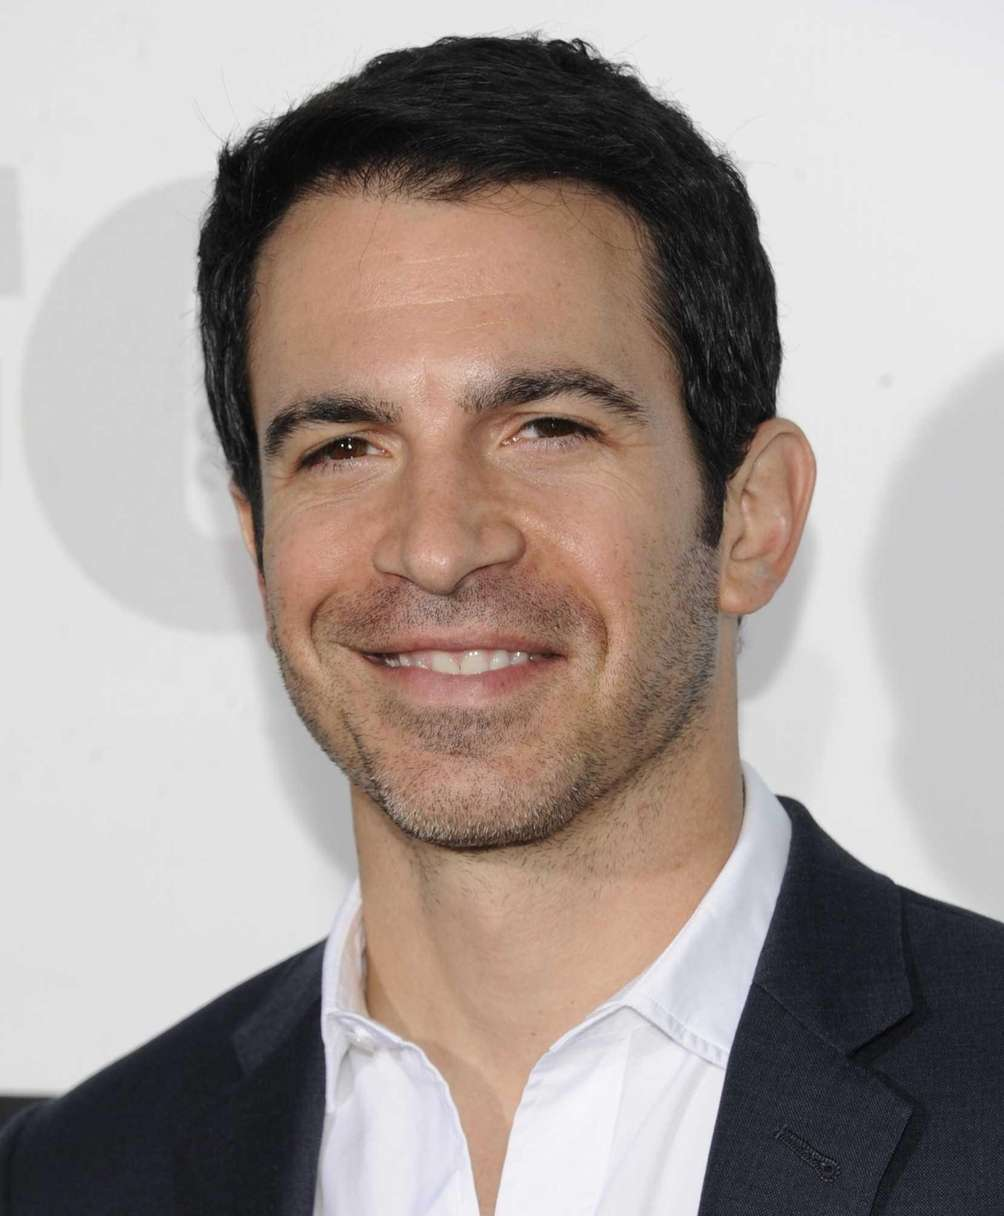 Actor Chris Messina is a Northport native and